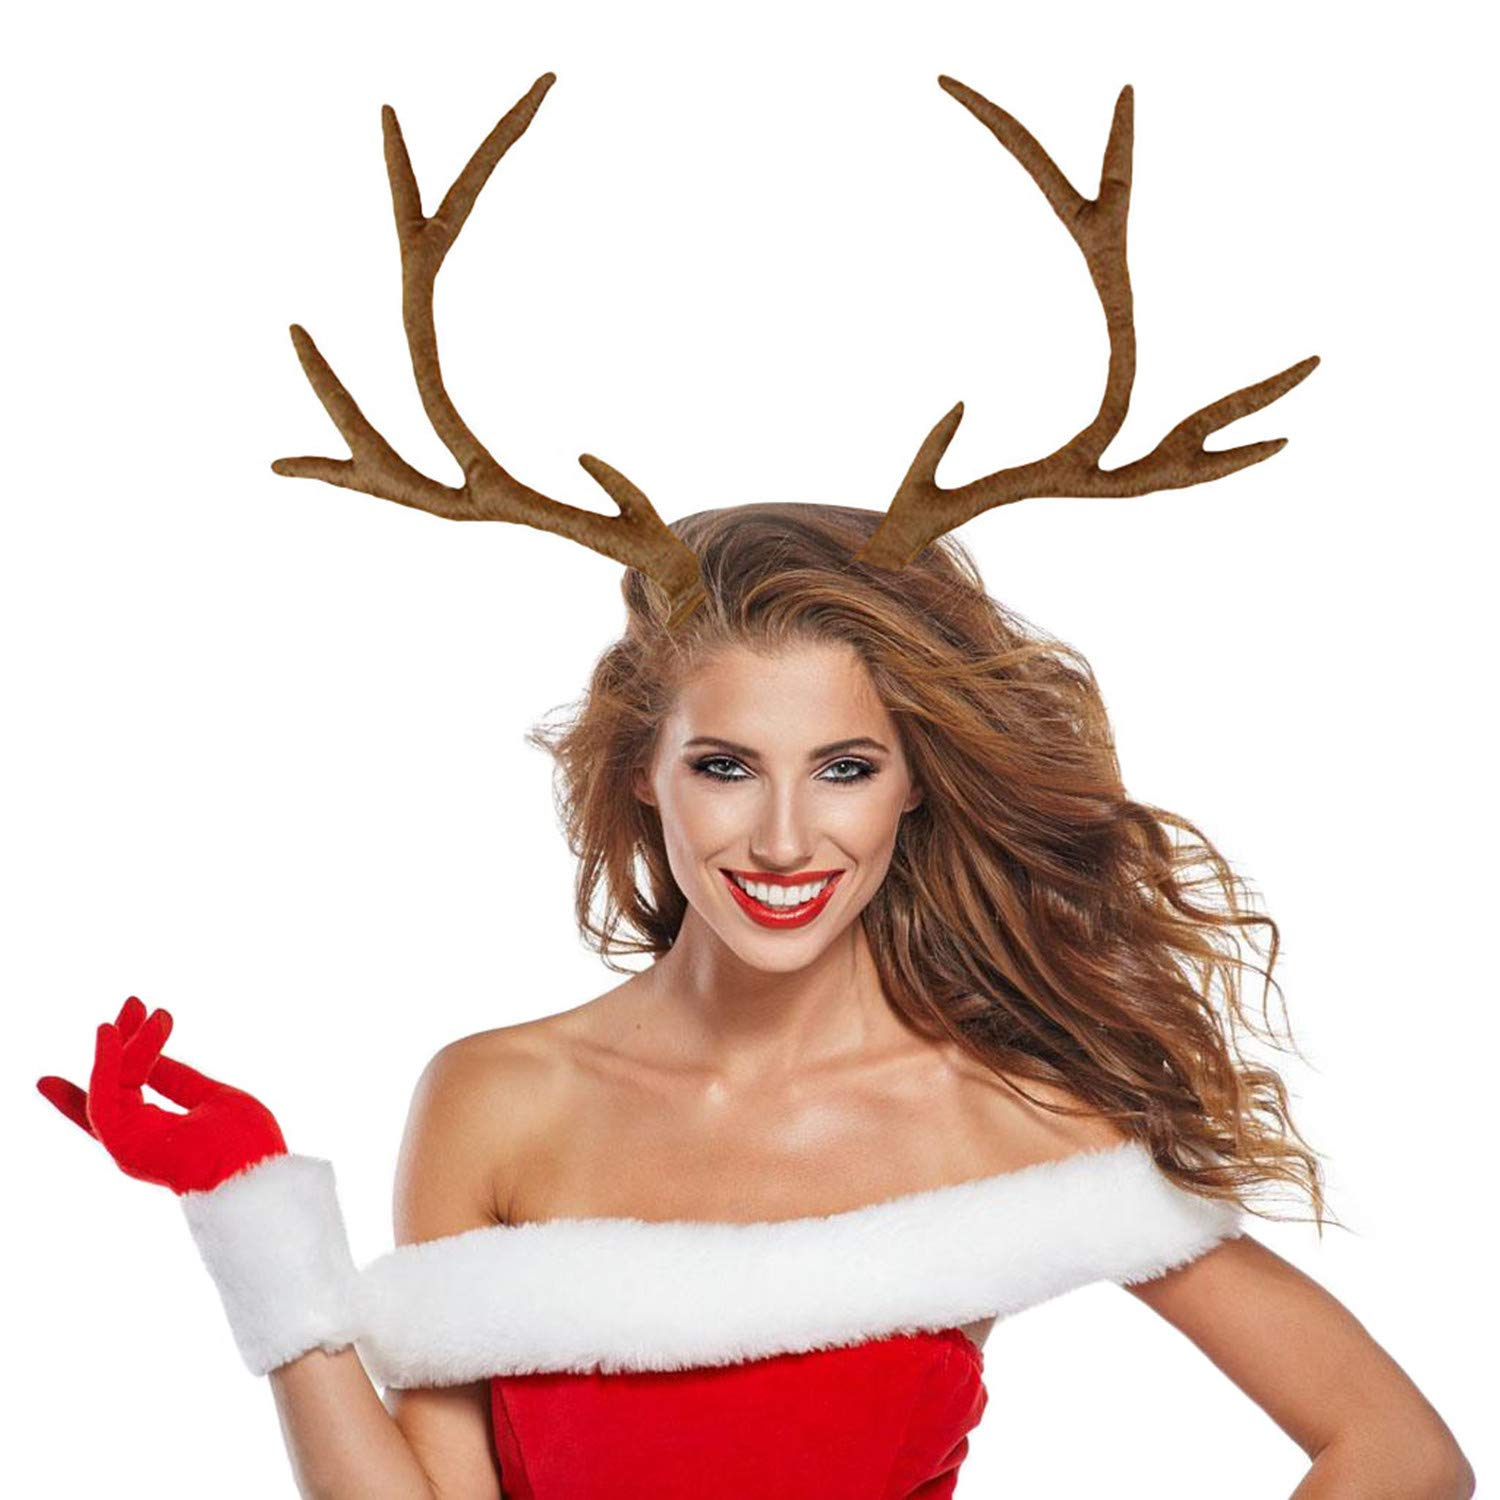 M&G House Reindeer Antlers Headband Christmas and Easter Party Short Plush Headbands (Brown) by M&G House